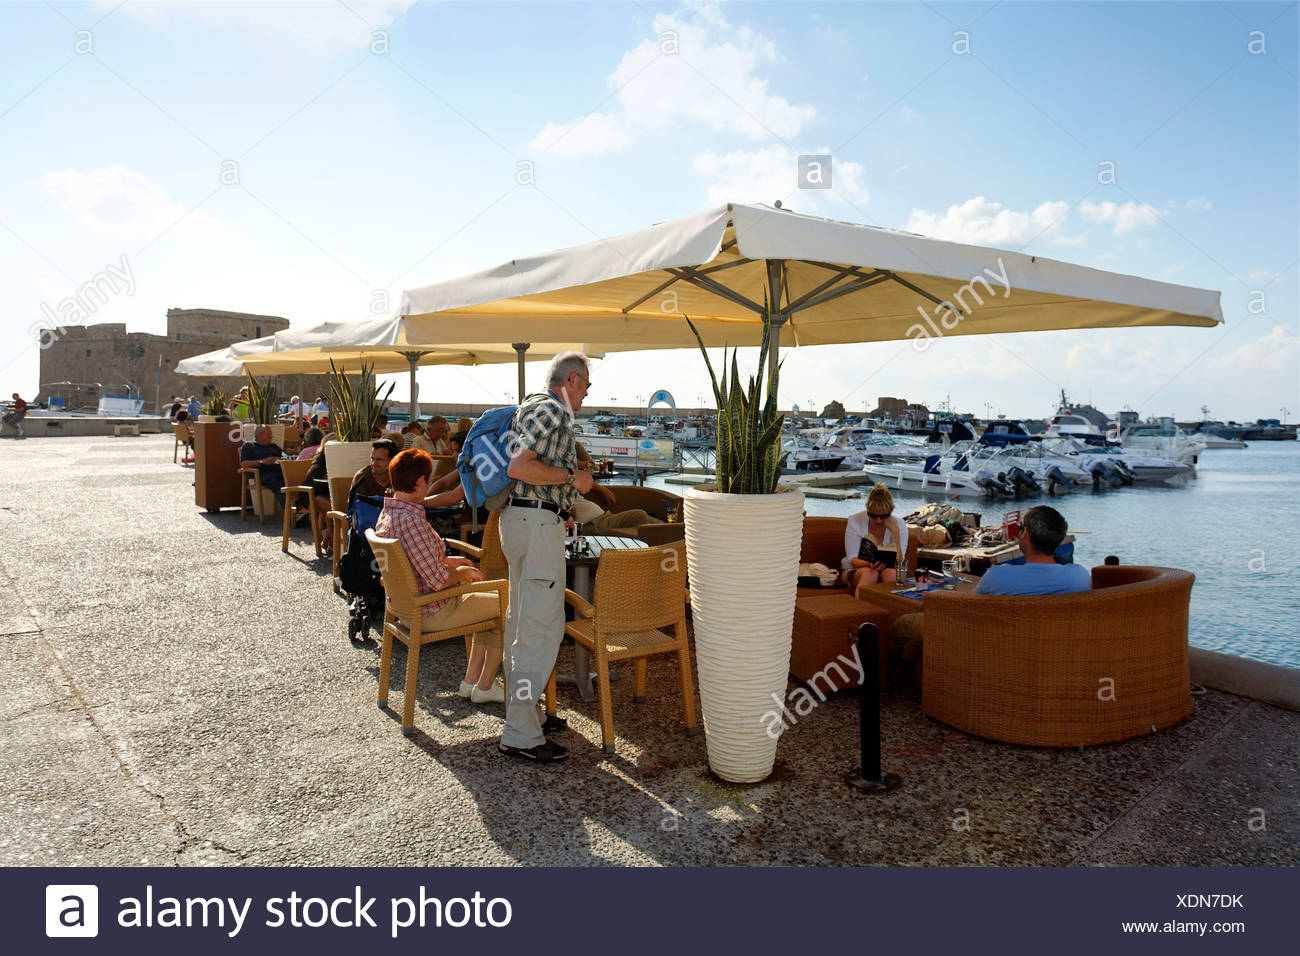 People in a cafe with sun umbrellas at the shore promenade, citadel, Paphos, Pafos, Cyprus, Europe Stock Photo